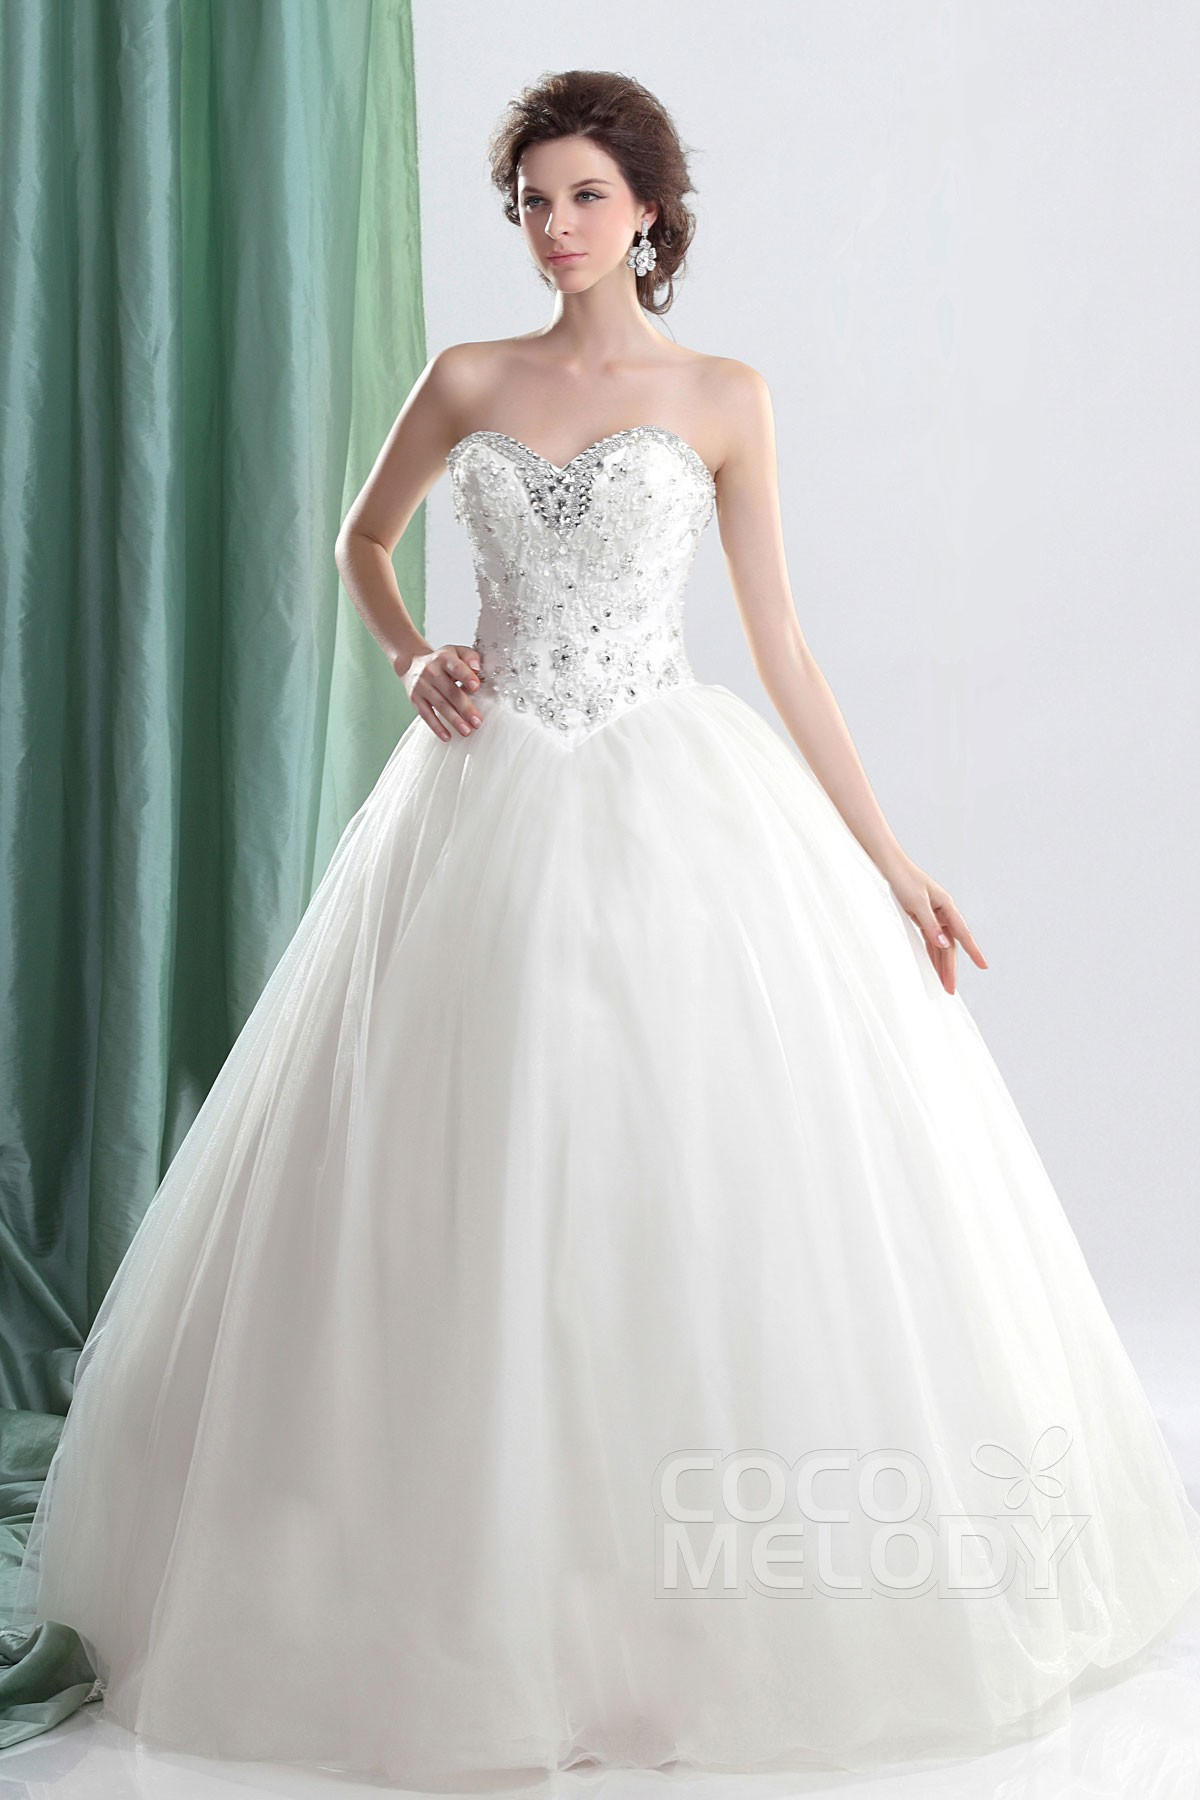 Ball Gown Floor Length Tulle Wedding Dress CWLF13008 | Cocomelody